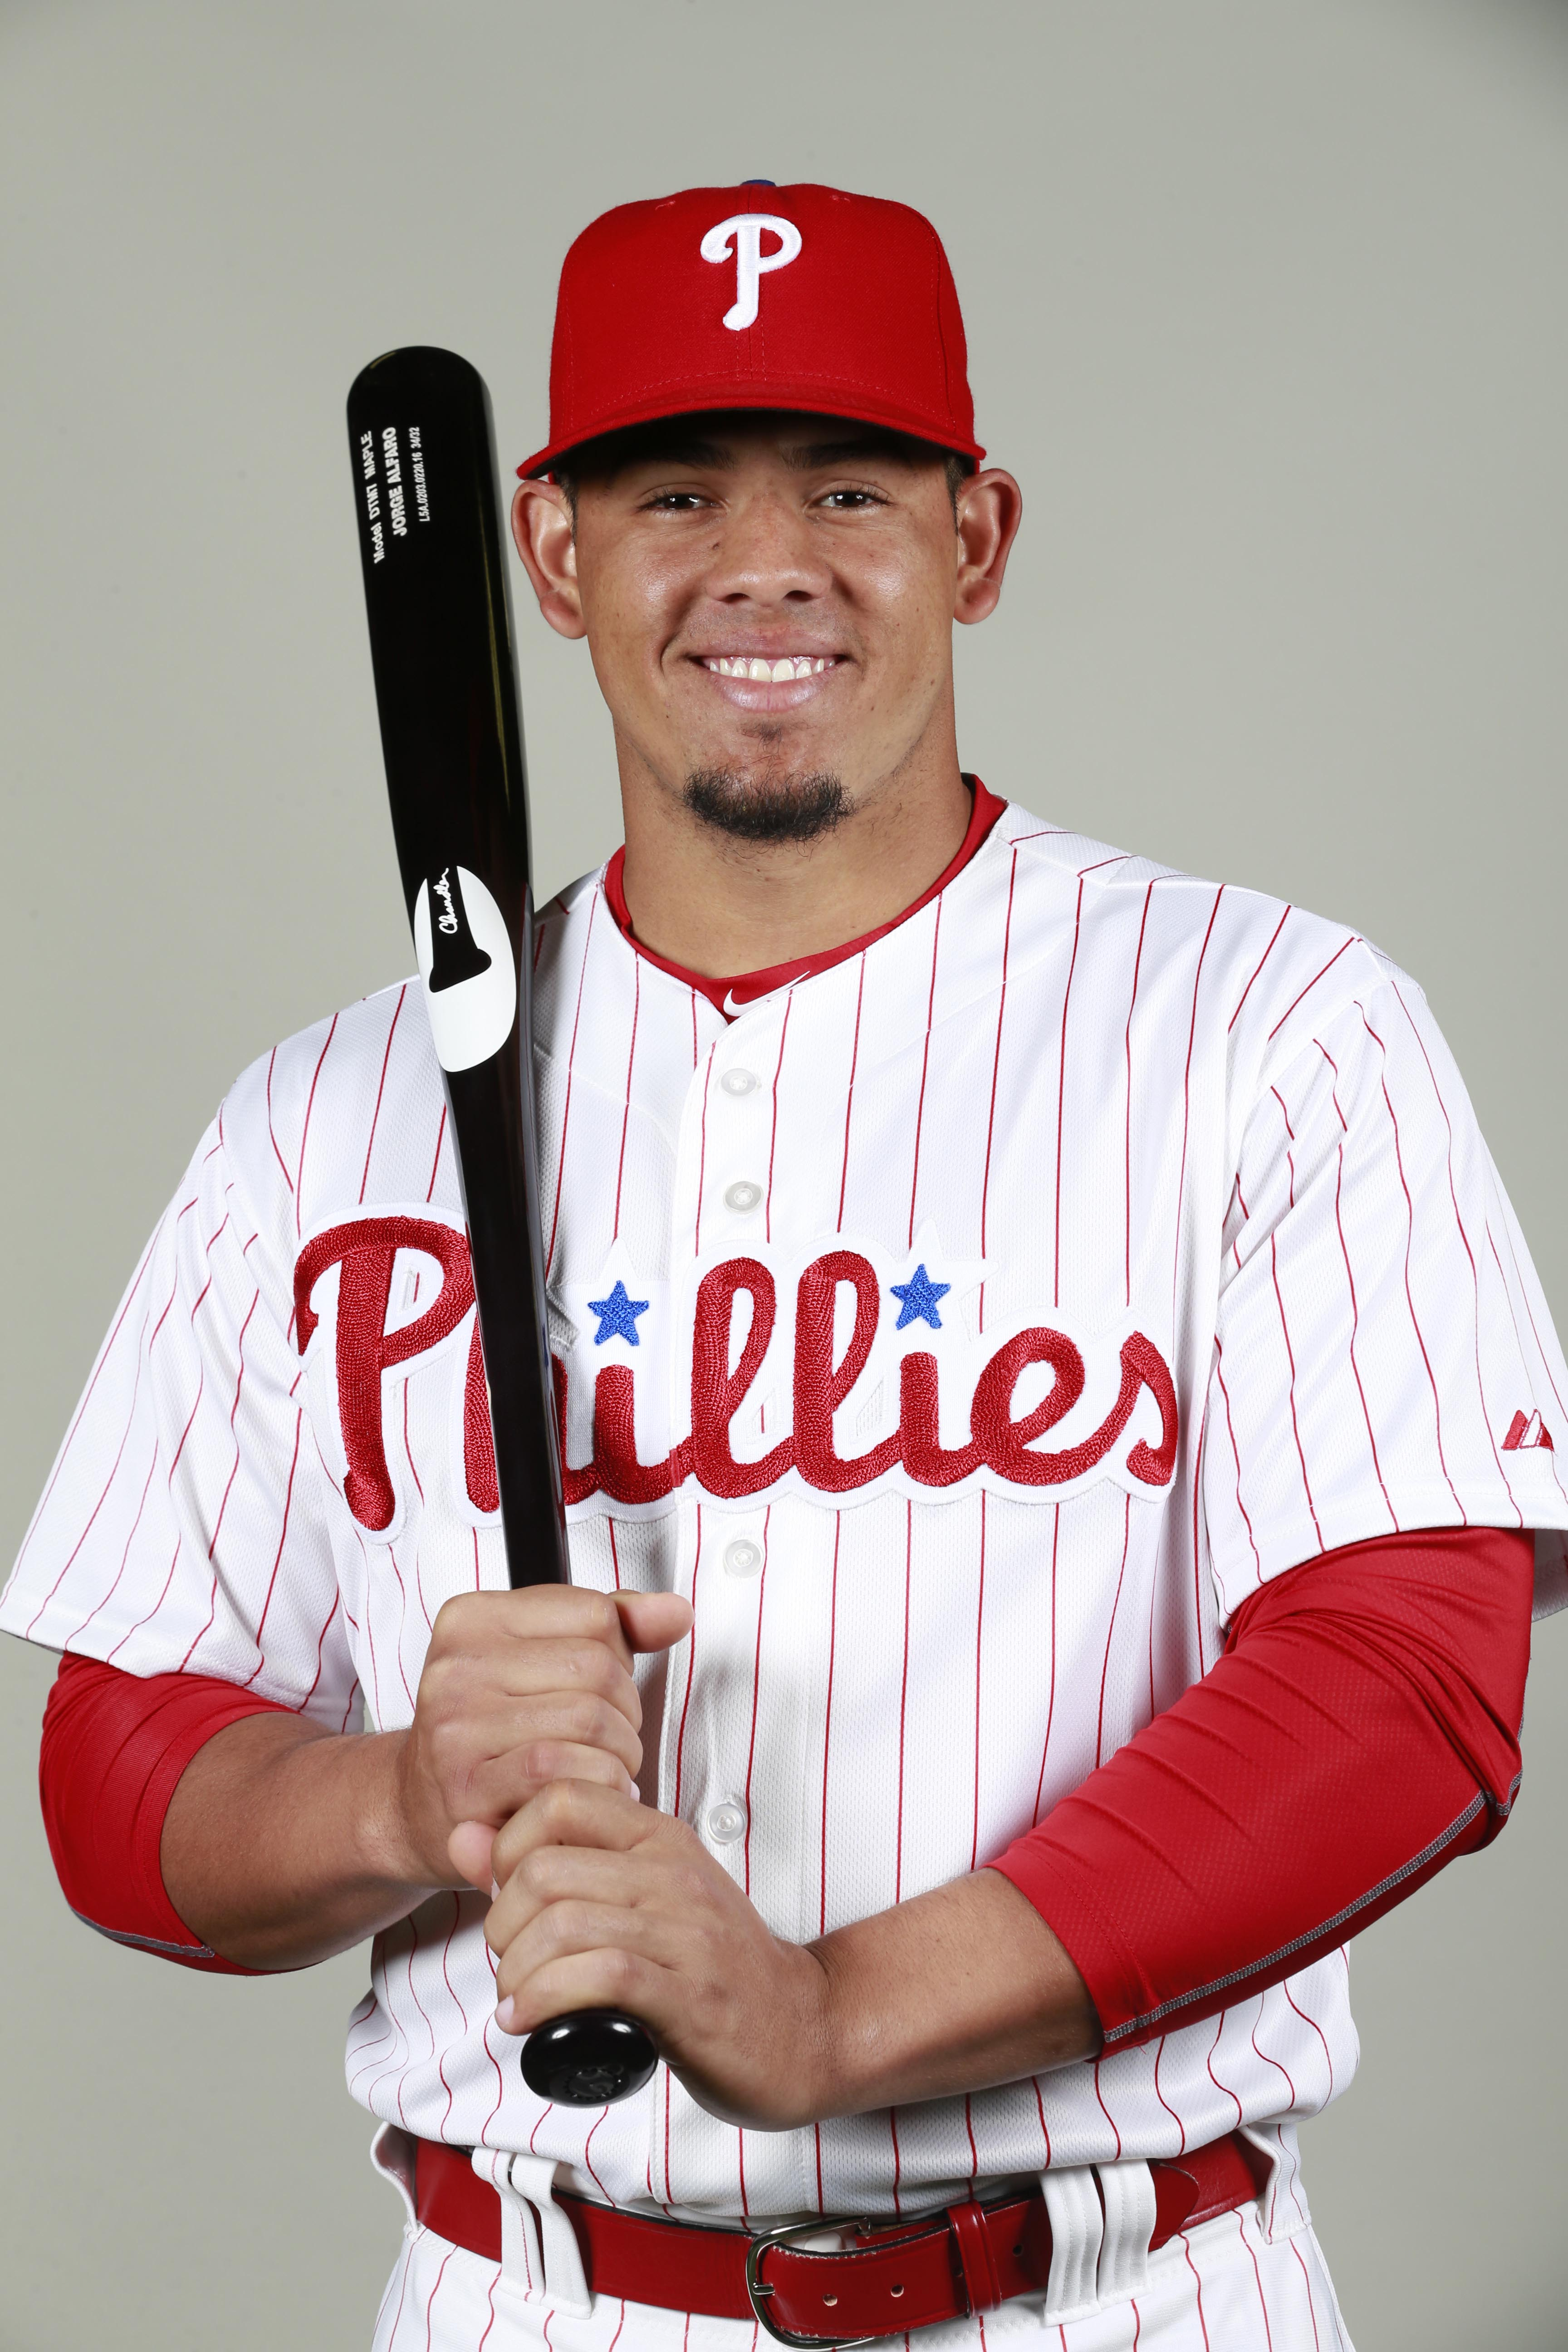 Alfaro 23 Has Long Been Considered One Of The S Top 100 Prospects He Came To Phils Along With Several Other Exciting Young Players In Deal